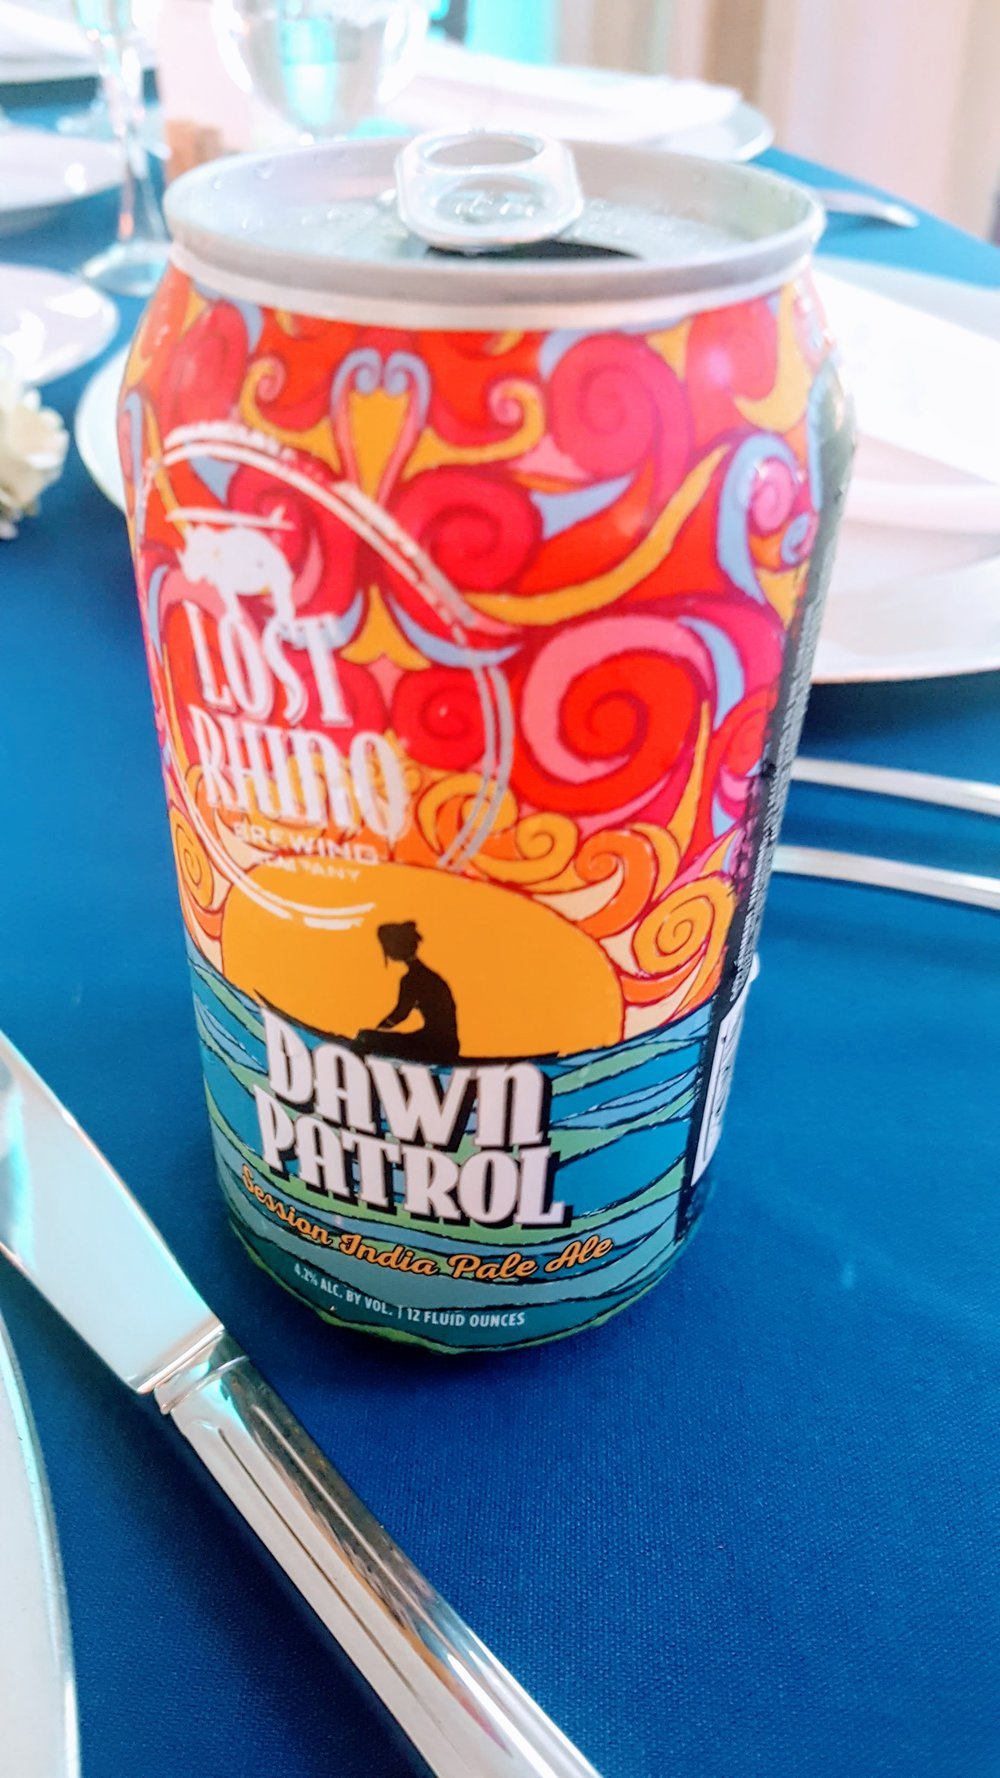 Dawn Patrol - Lost Rhino BrewI had about 7 at my friend's wedding, so I am absolutely able to vouch for this one.    *Best Can Decor*